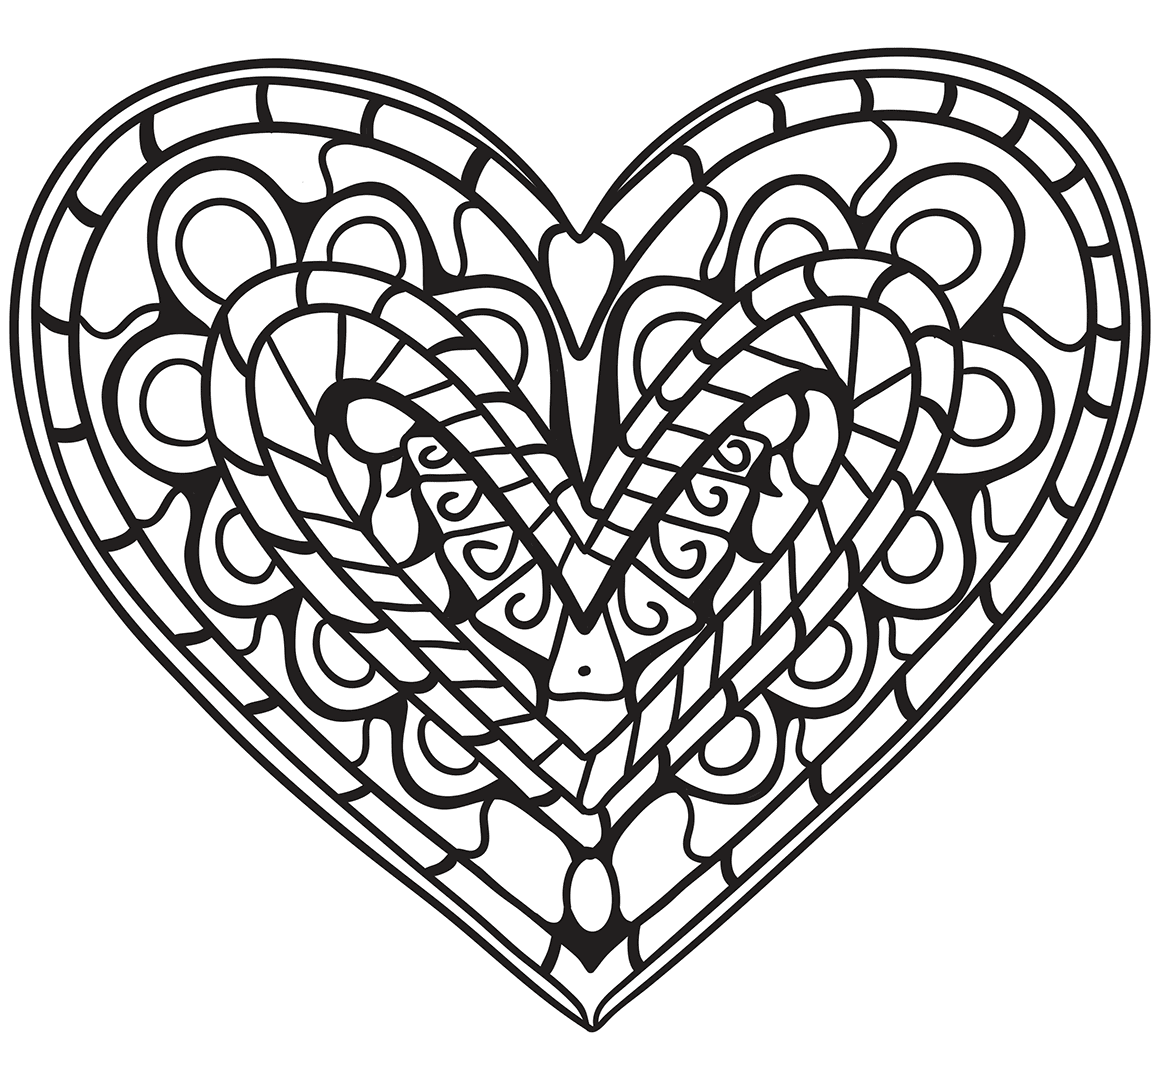 1159x1080 Coloring Sheets With Hearts Heart Pages Marvelous For Kids Anatomy